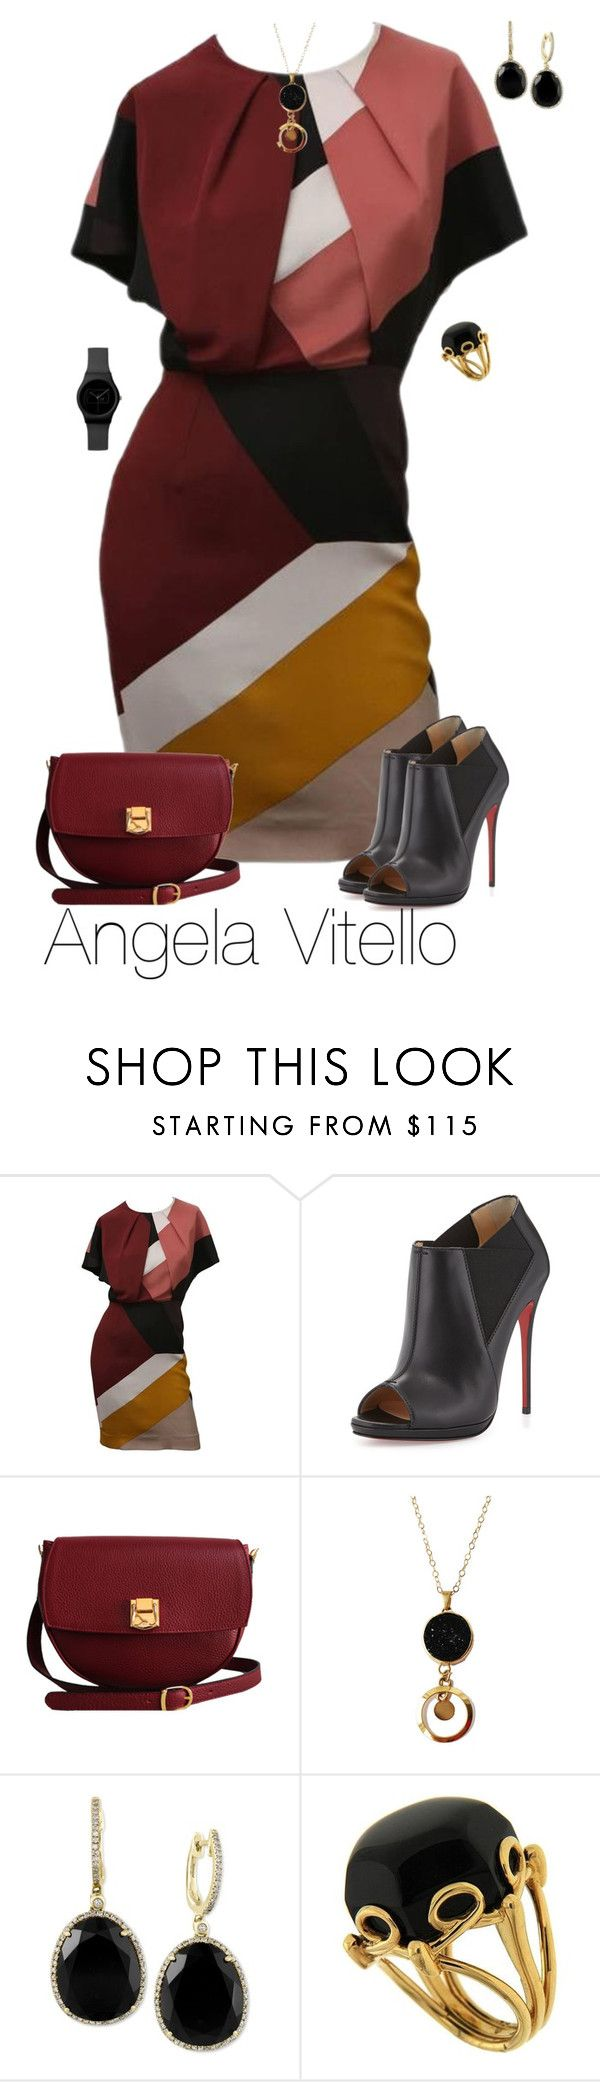 """Untitled #666"" by angela-vitello on Polyvore featuring Fendi, Christian Louboutin, The Code, Effy Jewelry, Valentin Magro, women's clothing, women, female, woman and misses"